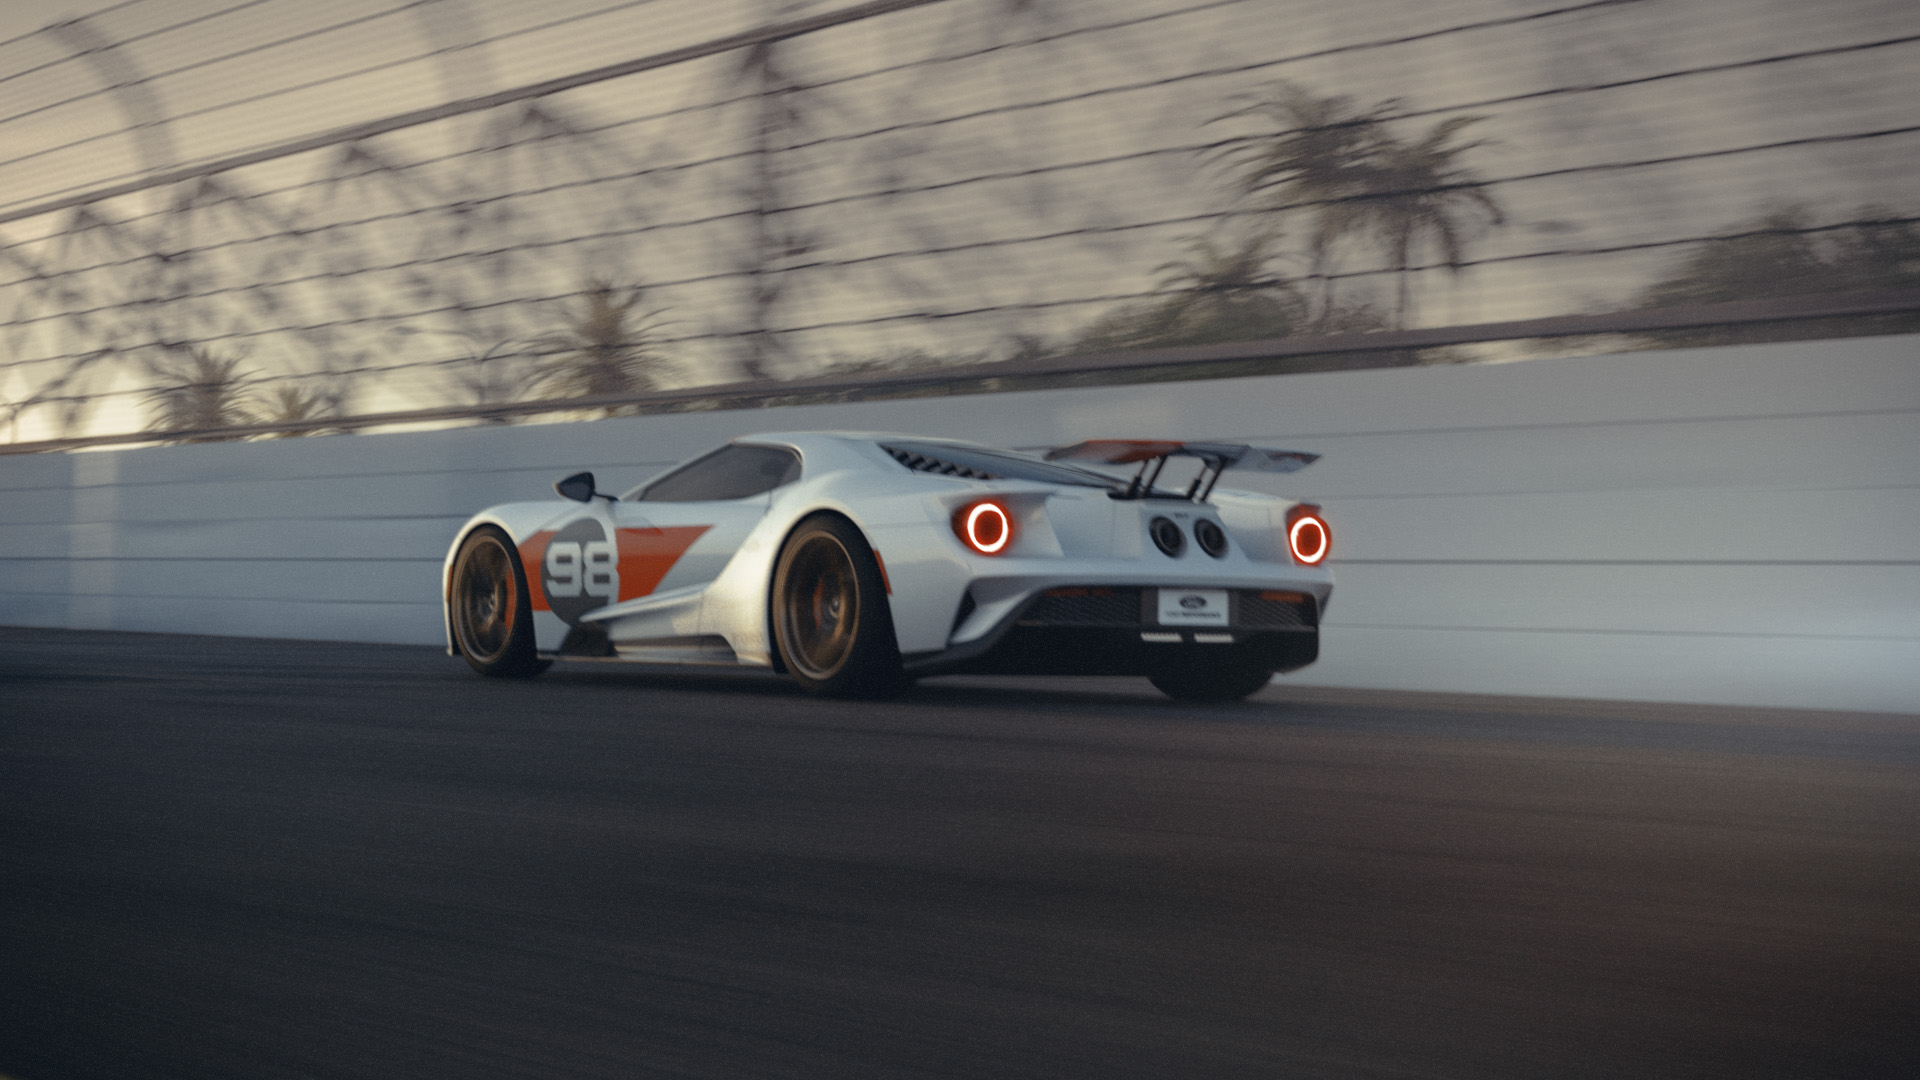 FIRST-EVER FORD GT HERITAGE EDITION TO CELEBRATE STORIED '66 DAYTONA WIN, PLUS 2021 STUDIO COLLECTION GRAPHICS PACKAGE